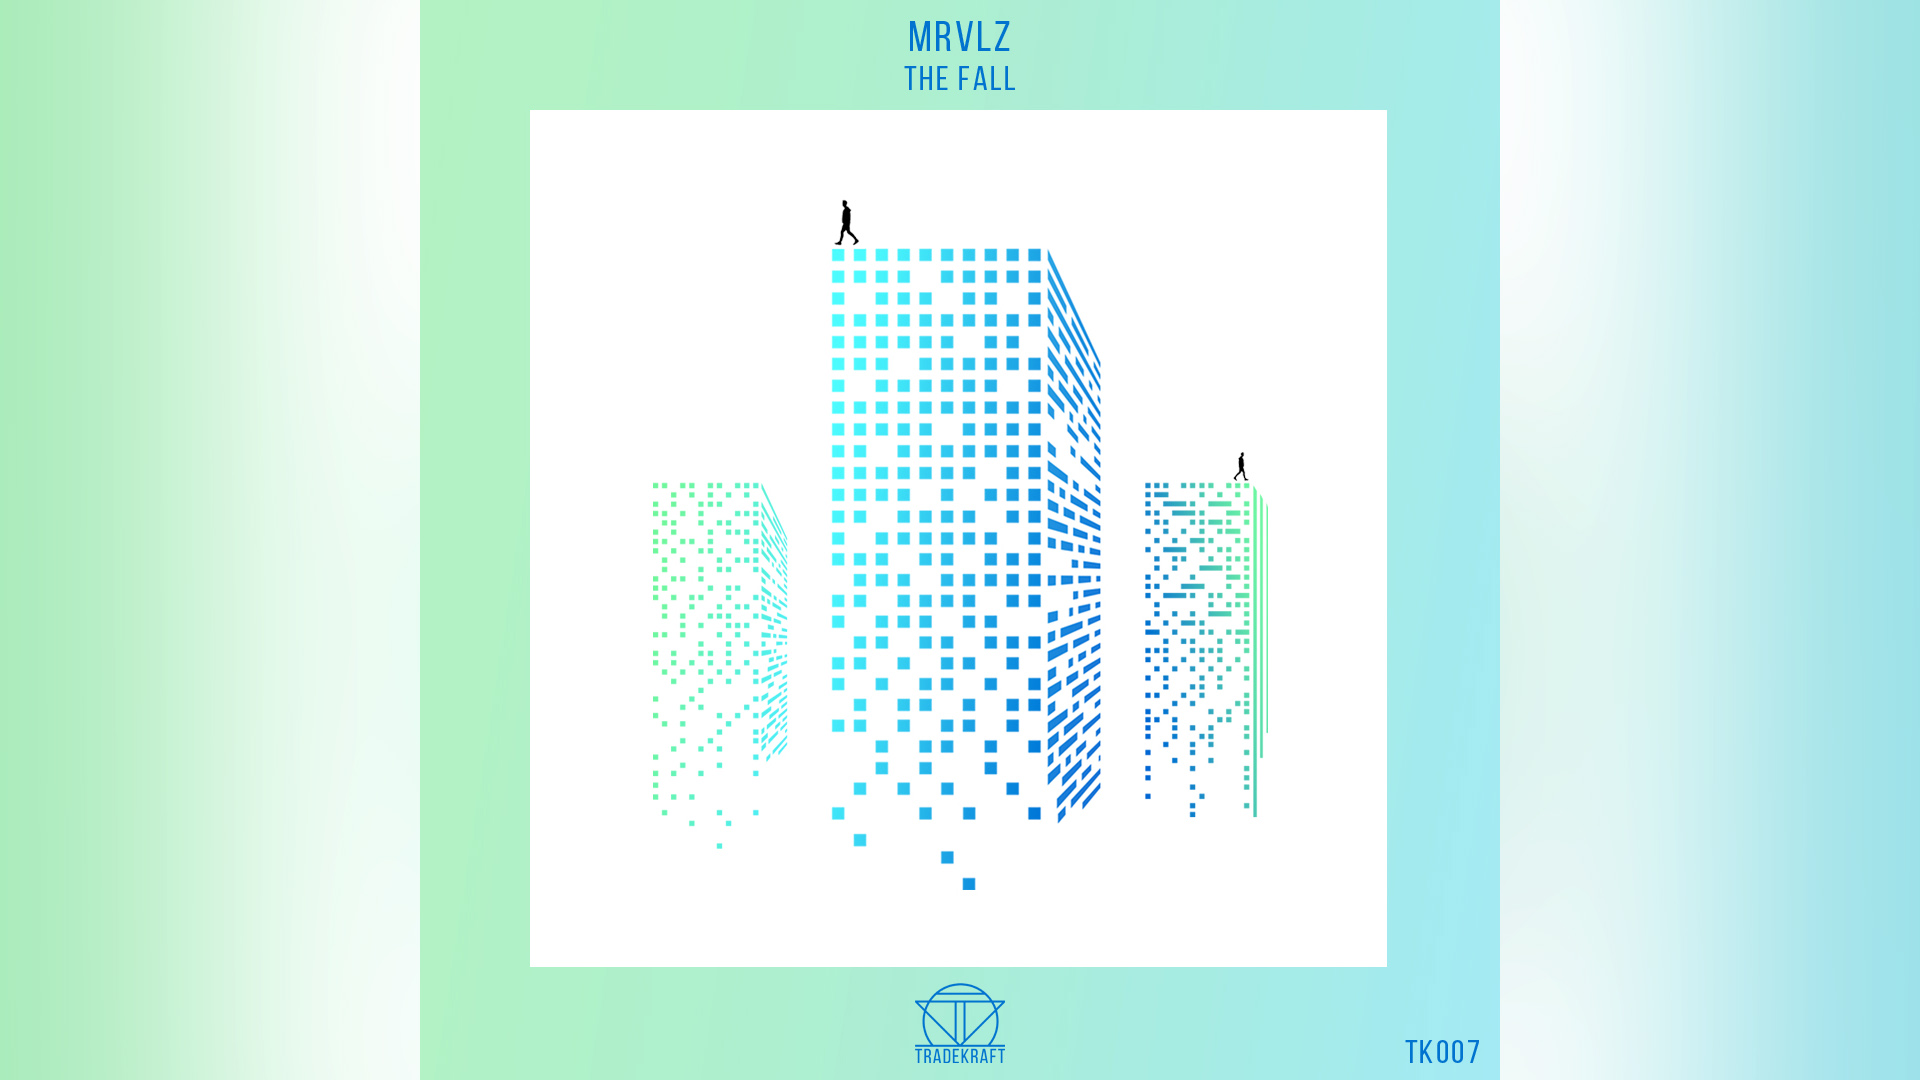 MRVLZ - The Fall